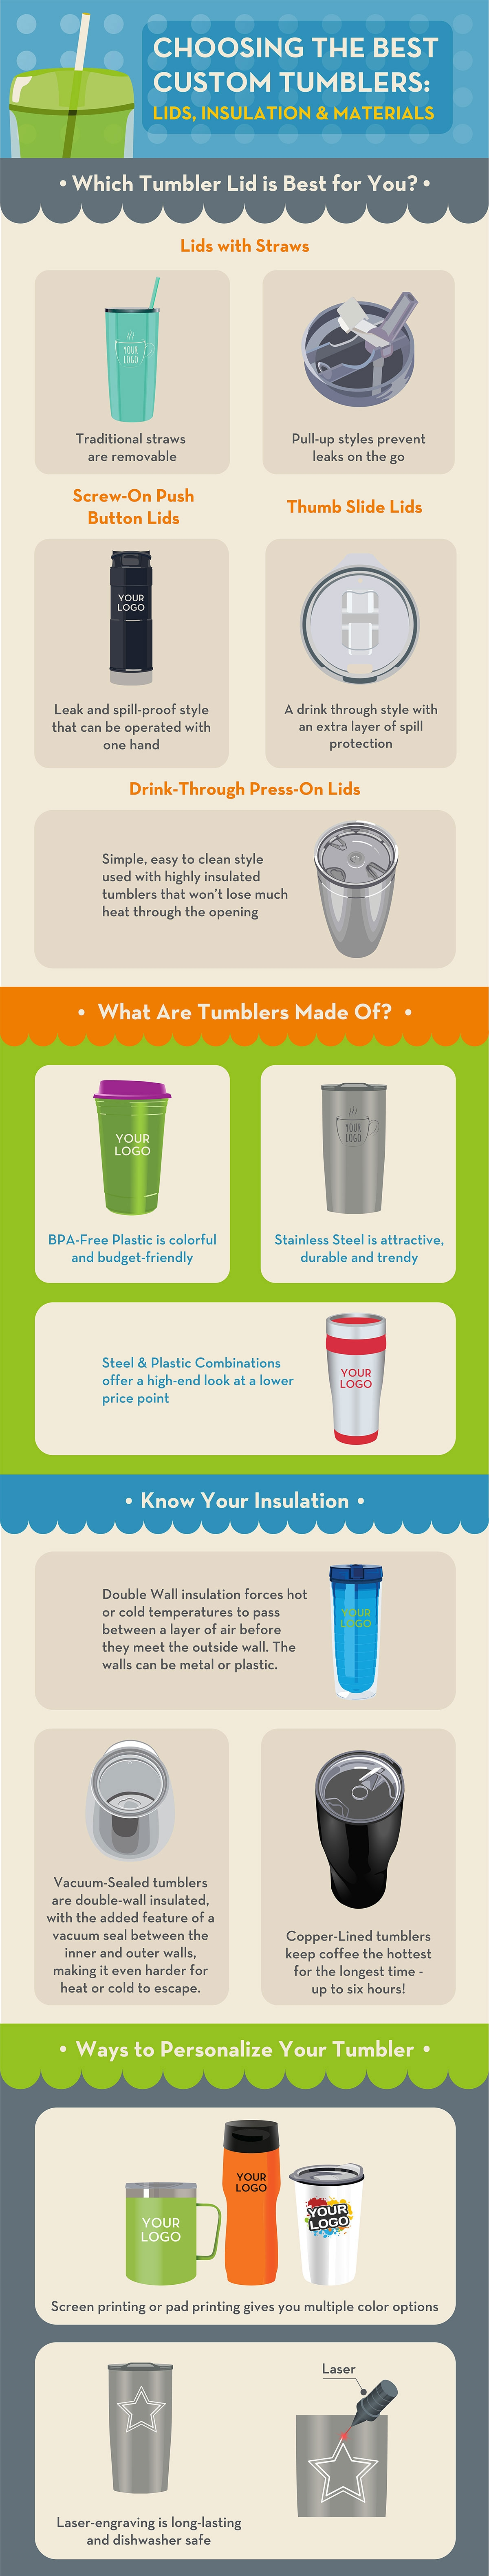 Tumbler Lid Styles Infographic